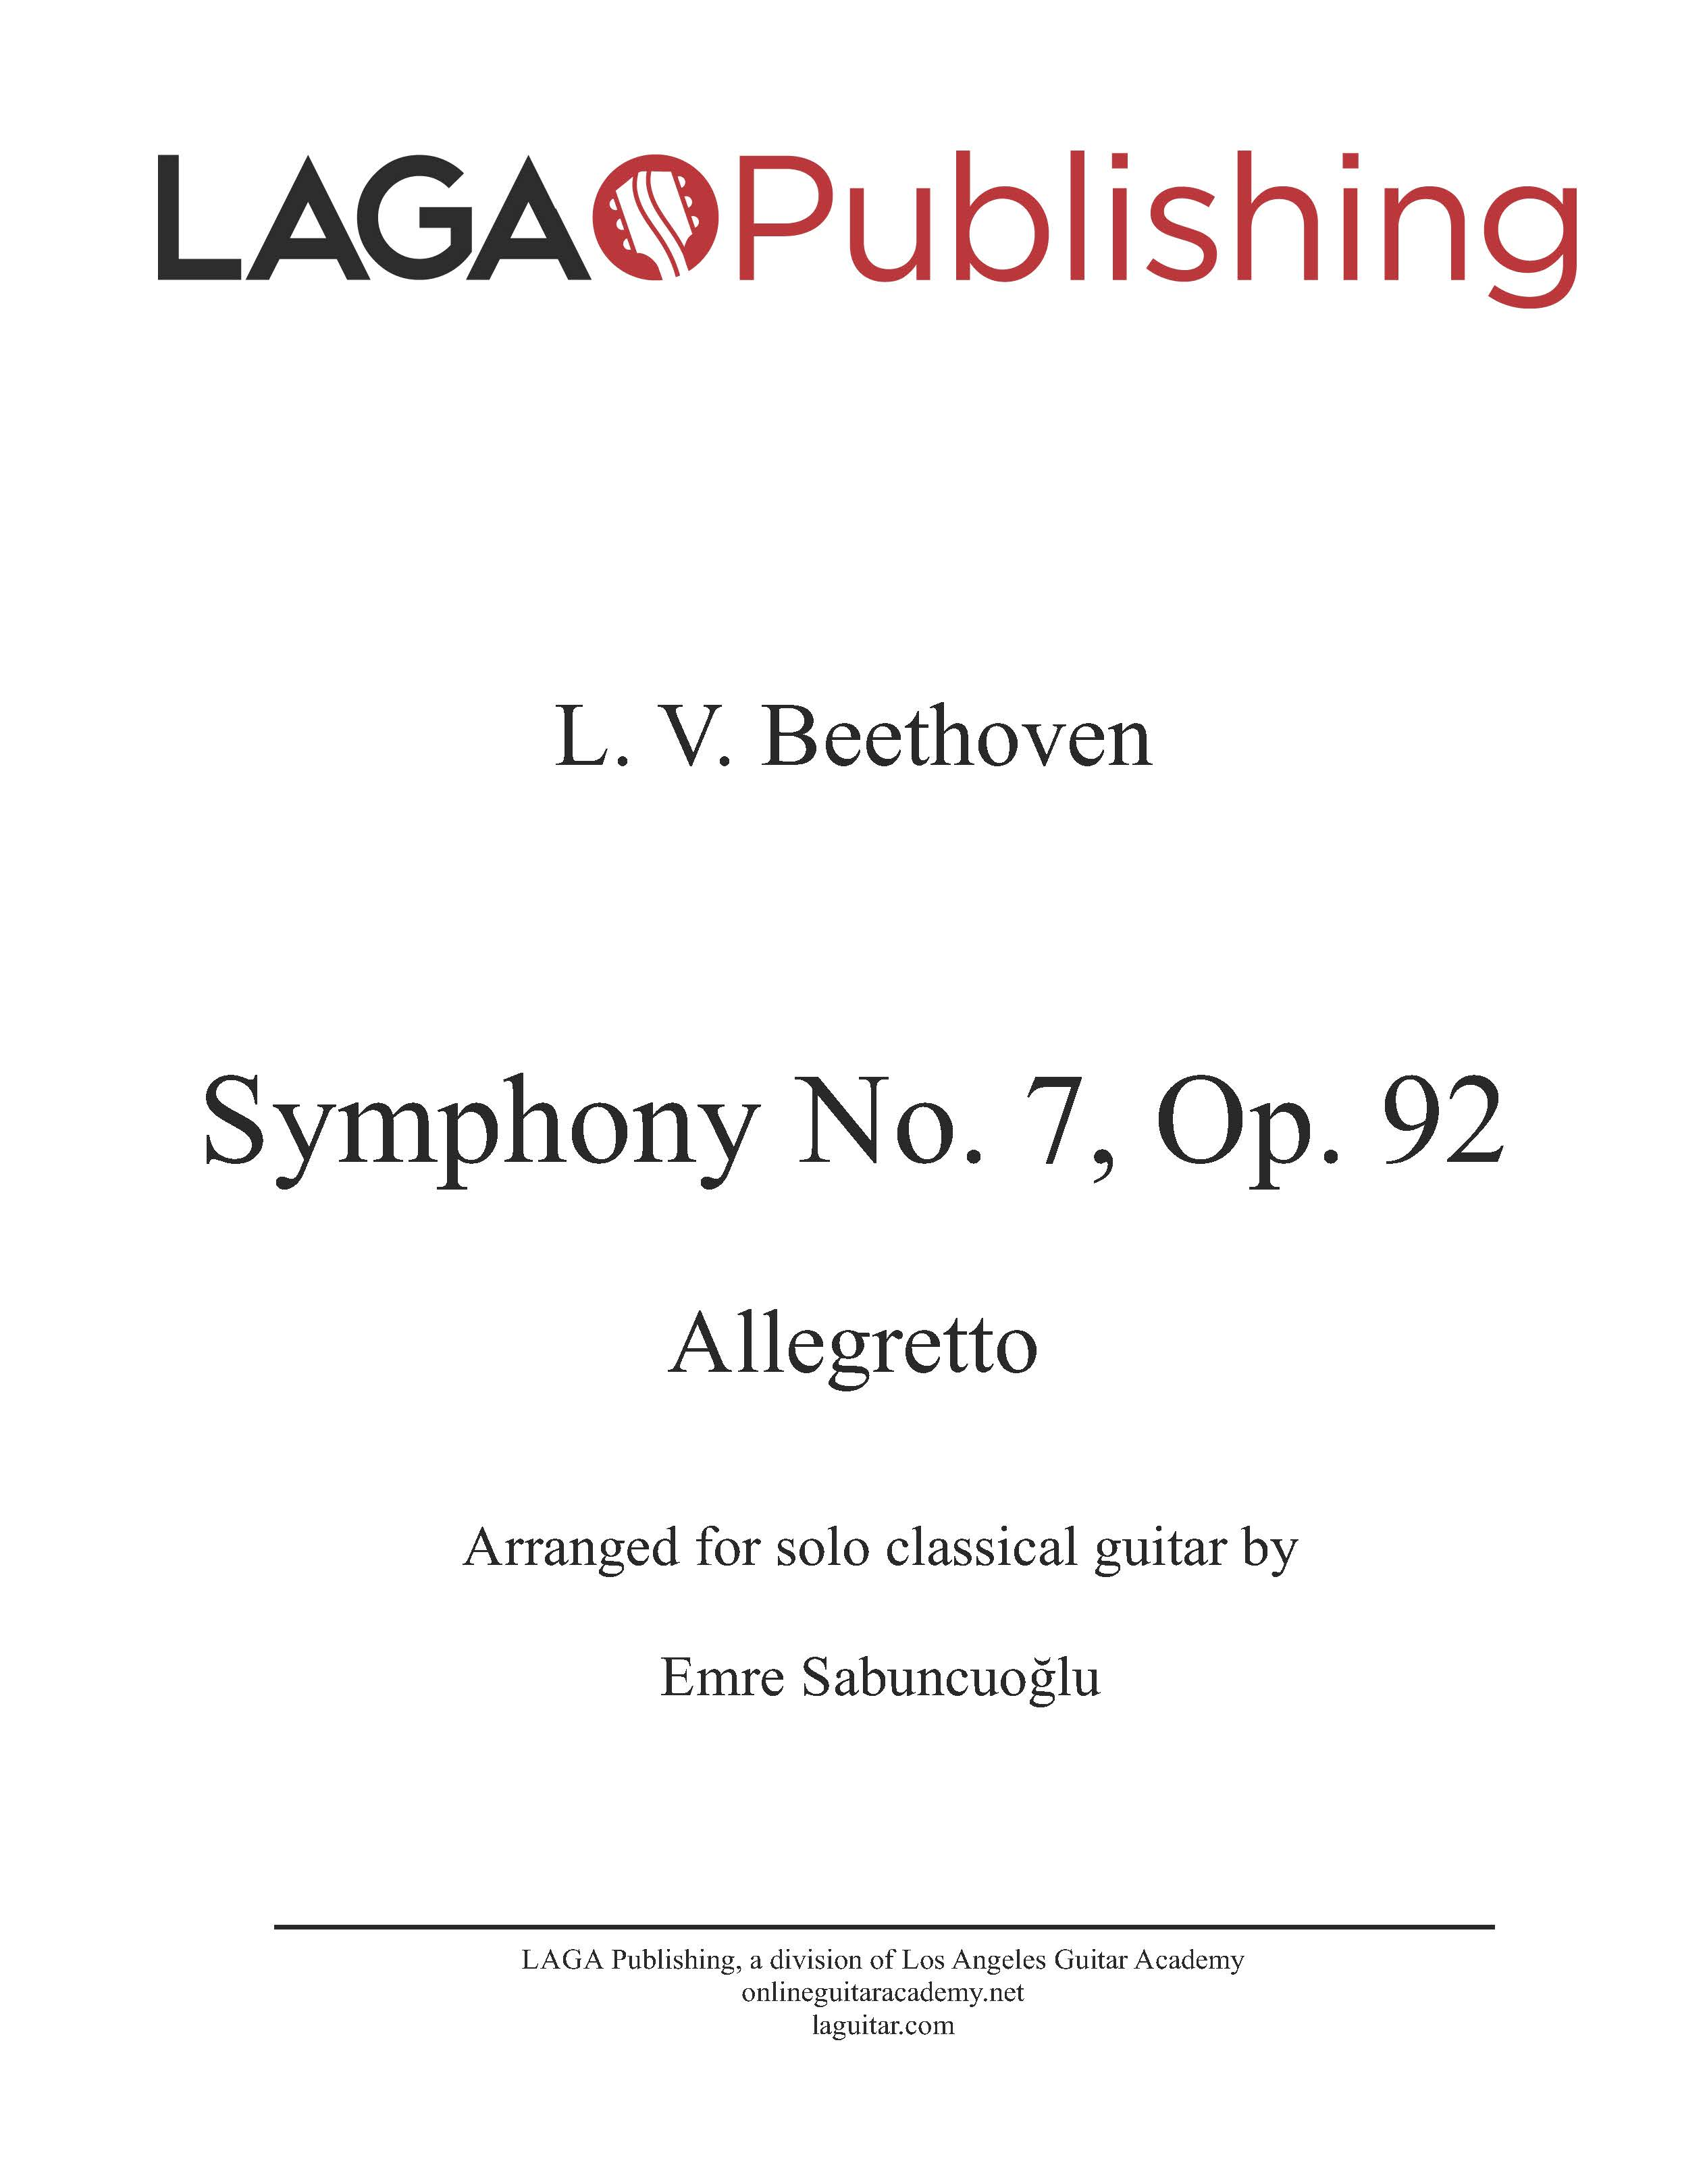 Symphony No. 7, Op. 92, II, Allegretto (Advanced Level) by L.V. Beethoven